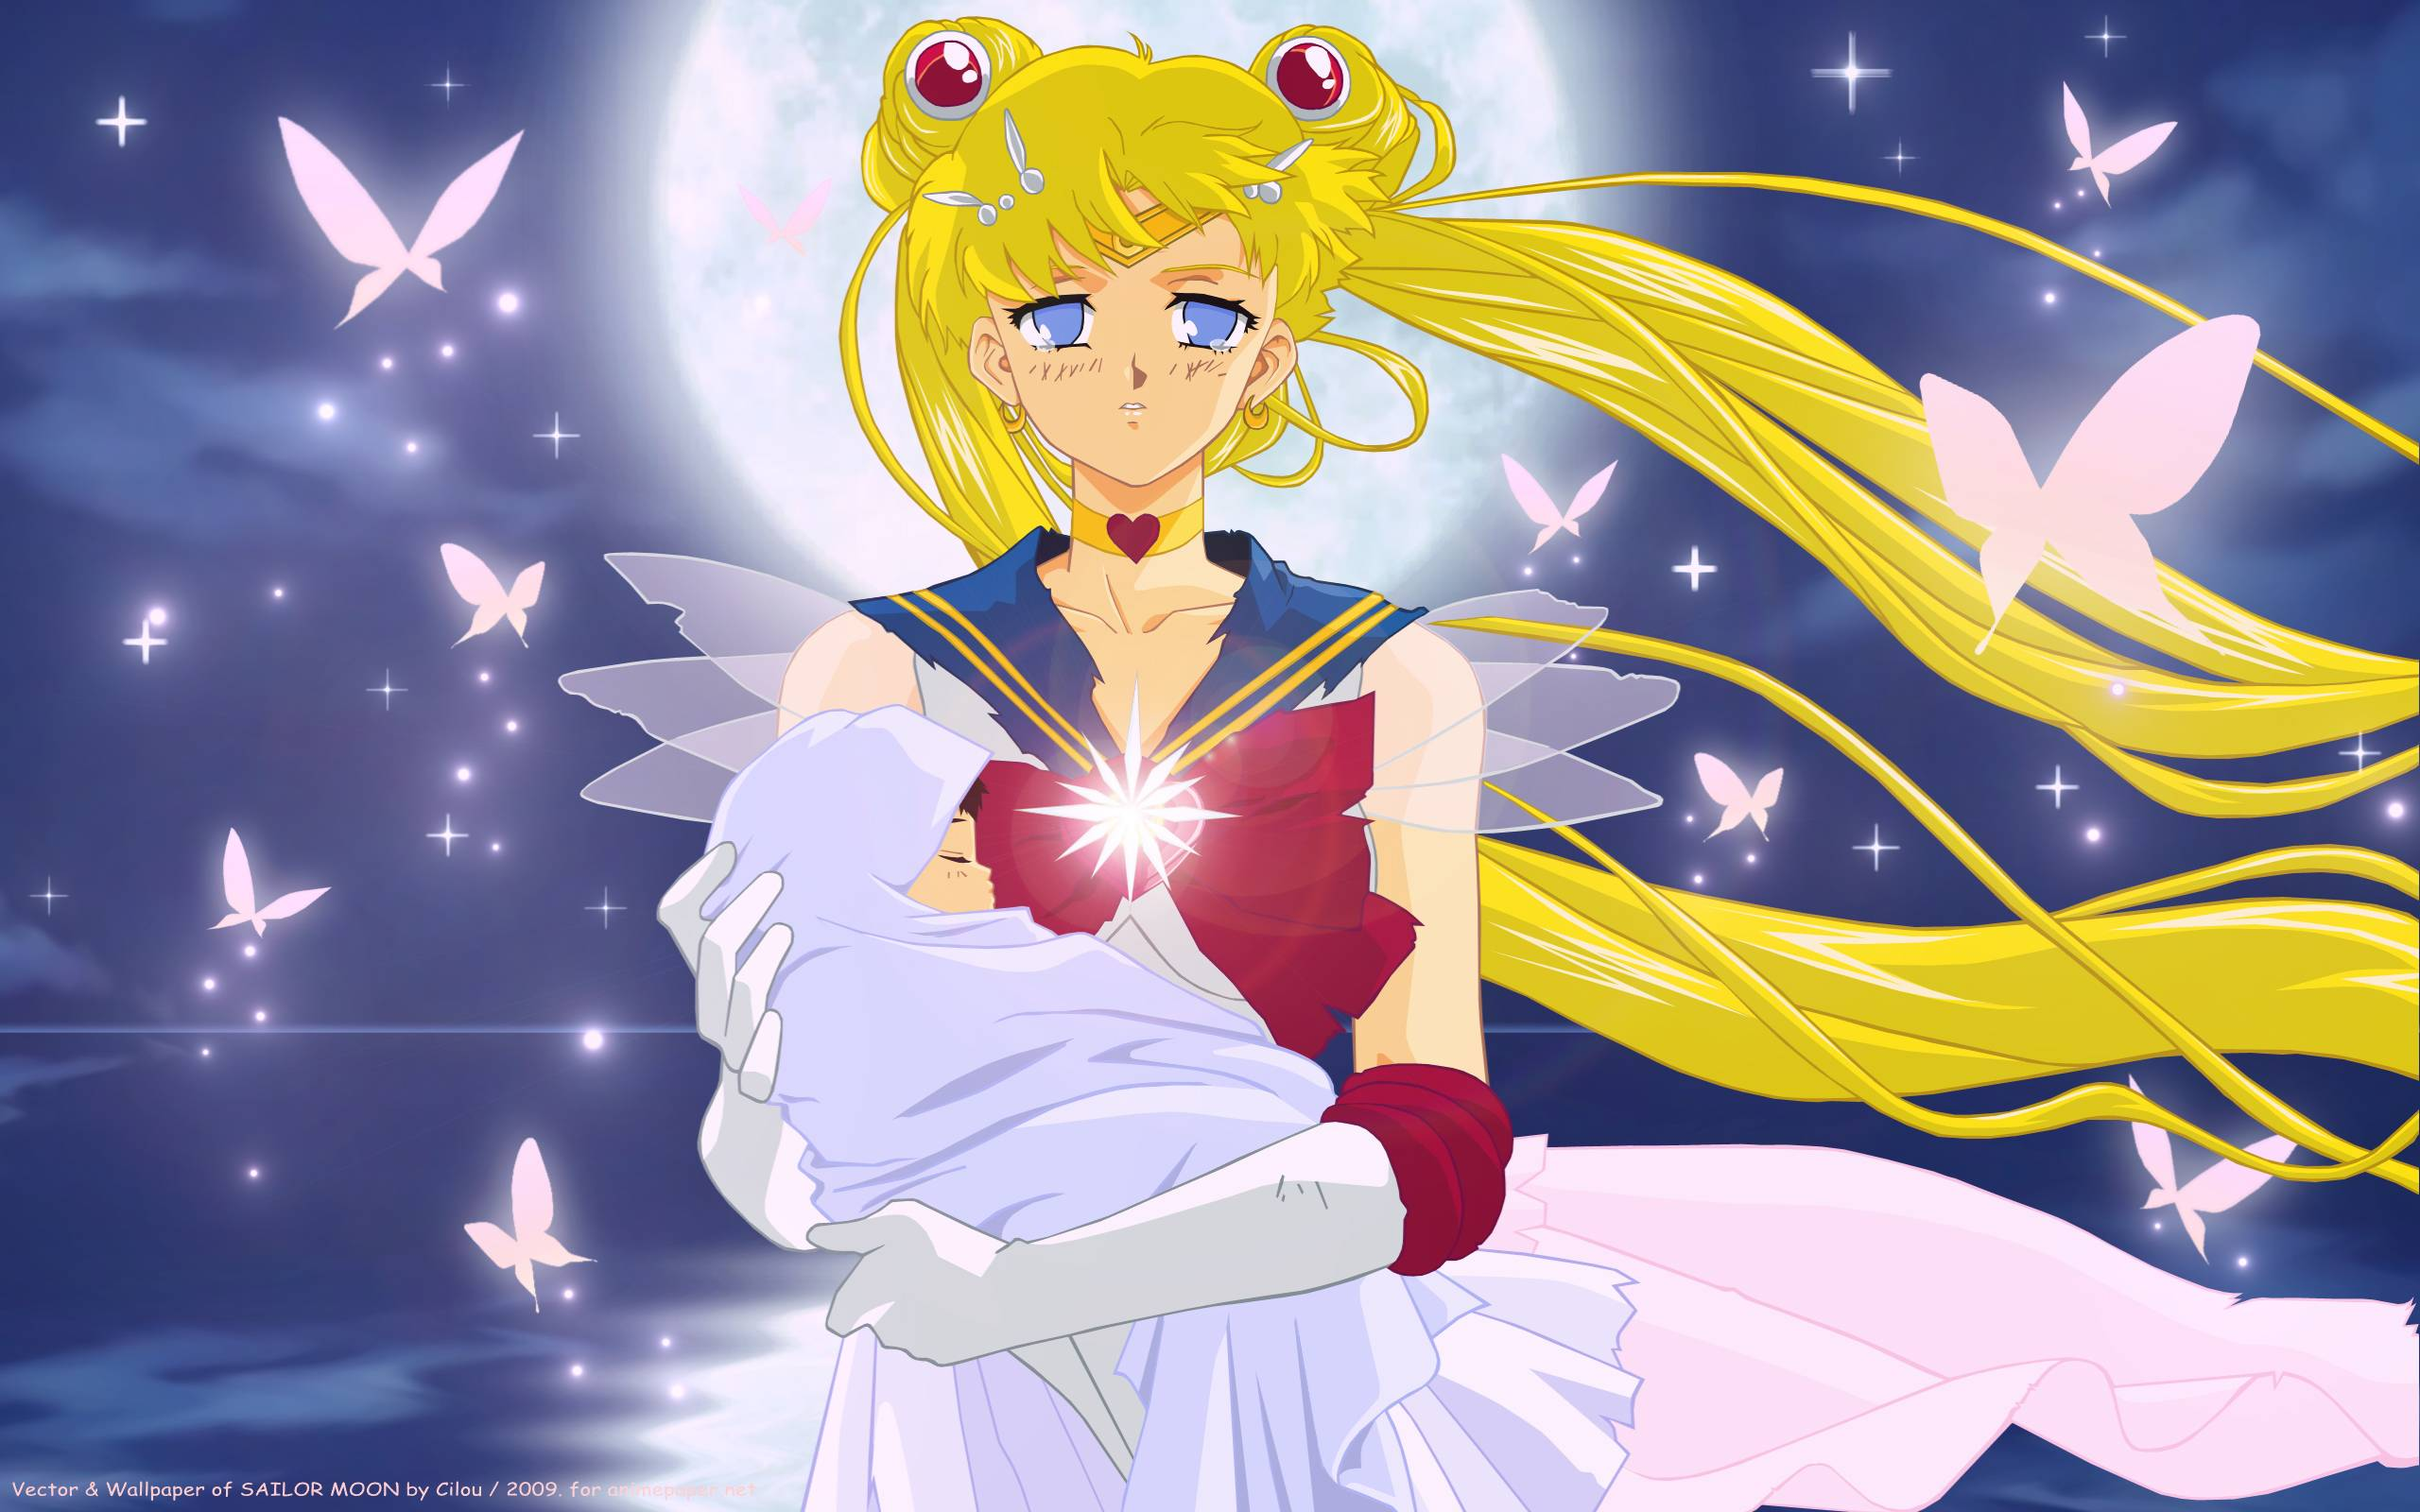 Amazing Wallpaper Macbook Sailor Moon - y1RLa7Z  Trends_301294.jpg